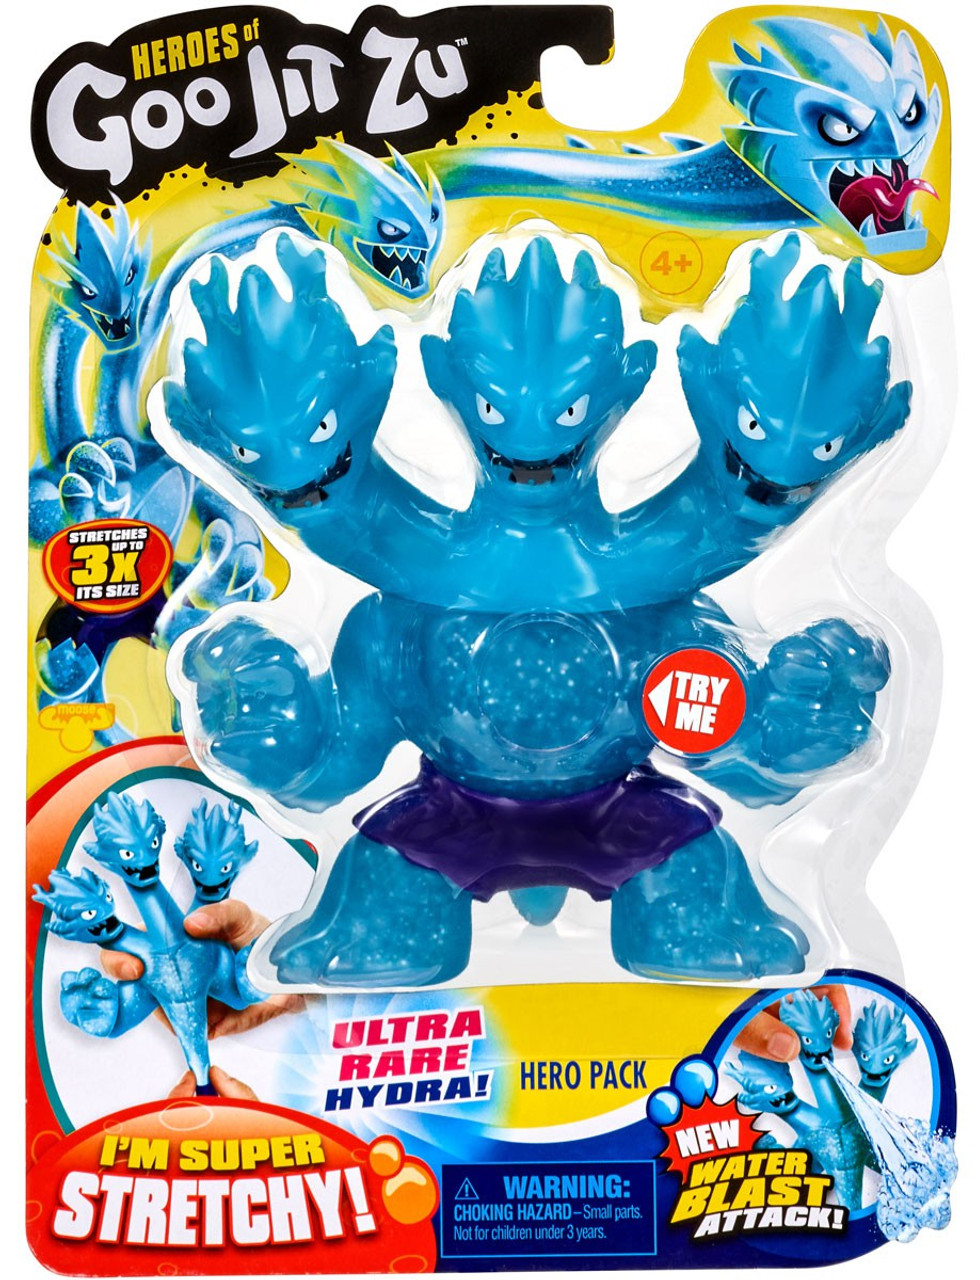 How To Add Morph Buttons To Roblox Game Hydra Heroes Of Goo Jit Zu Hydra Ultra Rare Action Figure 3 Headed Dragon Water Blast Moose Toys Toywiz